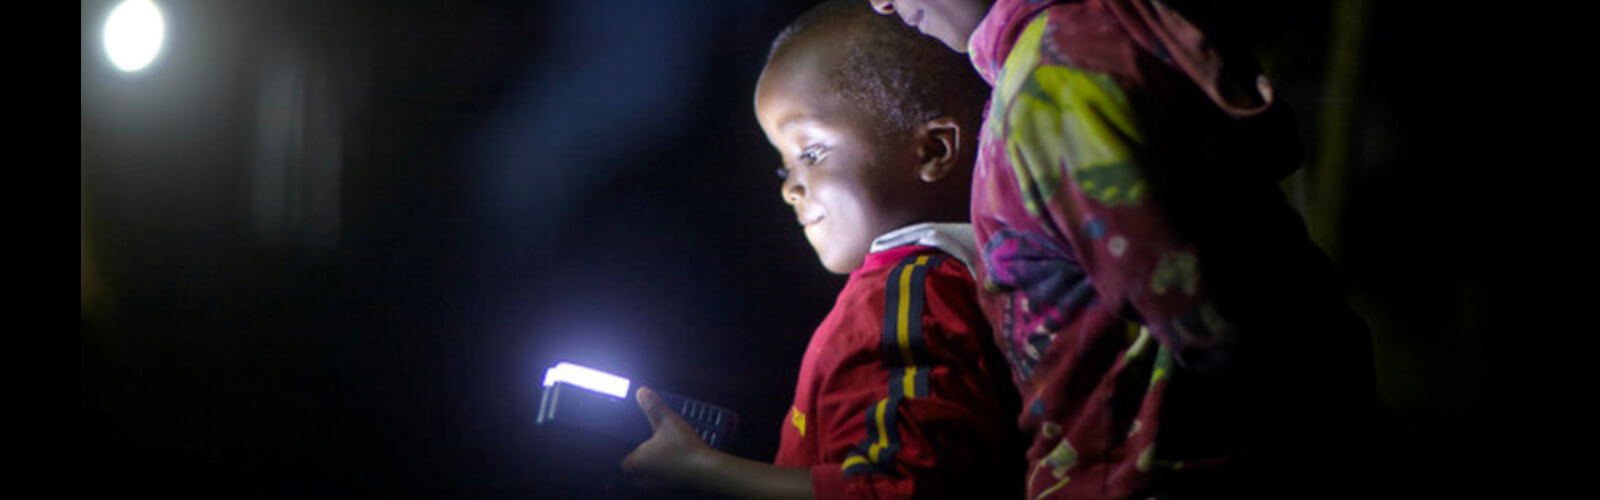 Child looking at a glowing mobile device in the dark